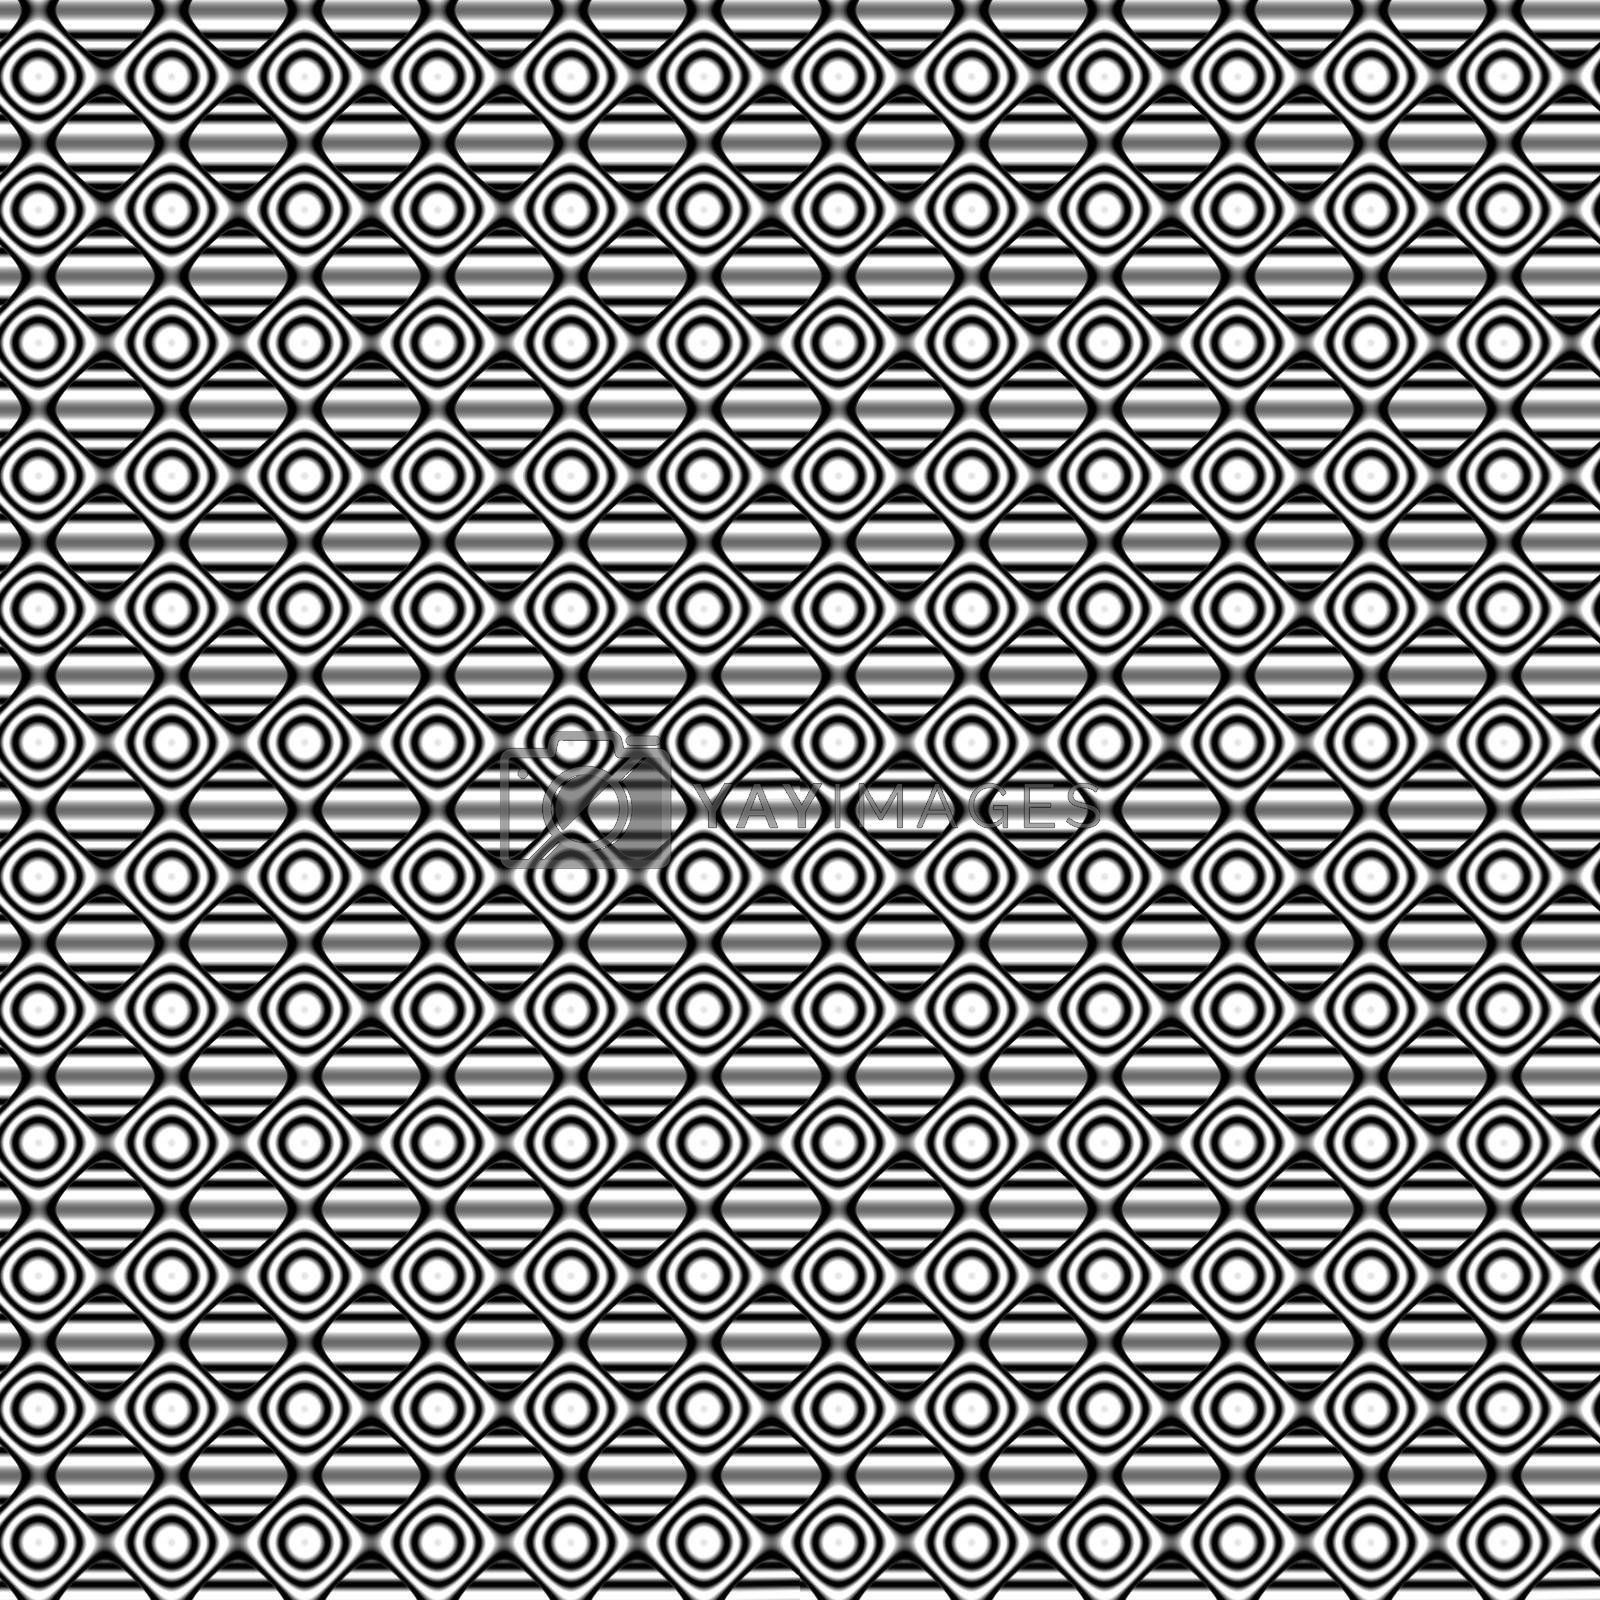 tiling black-and-white background by brigg